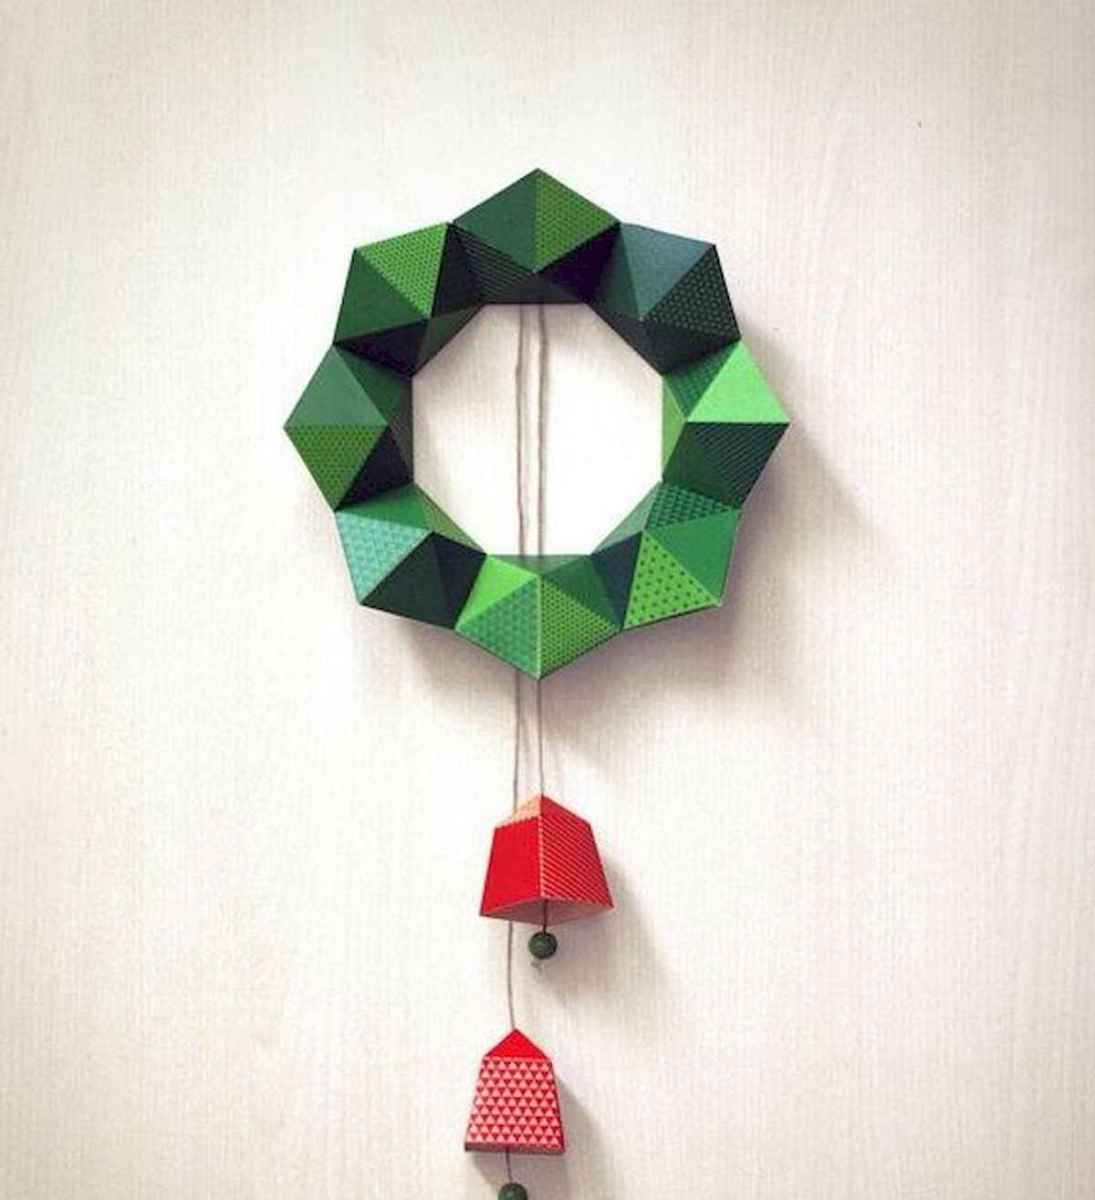 50 inspiring easy craft ideas for kids you must try (24)